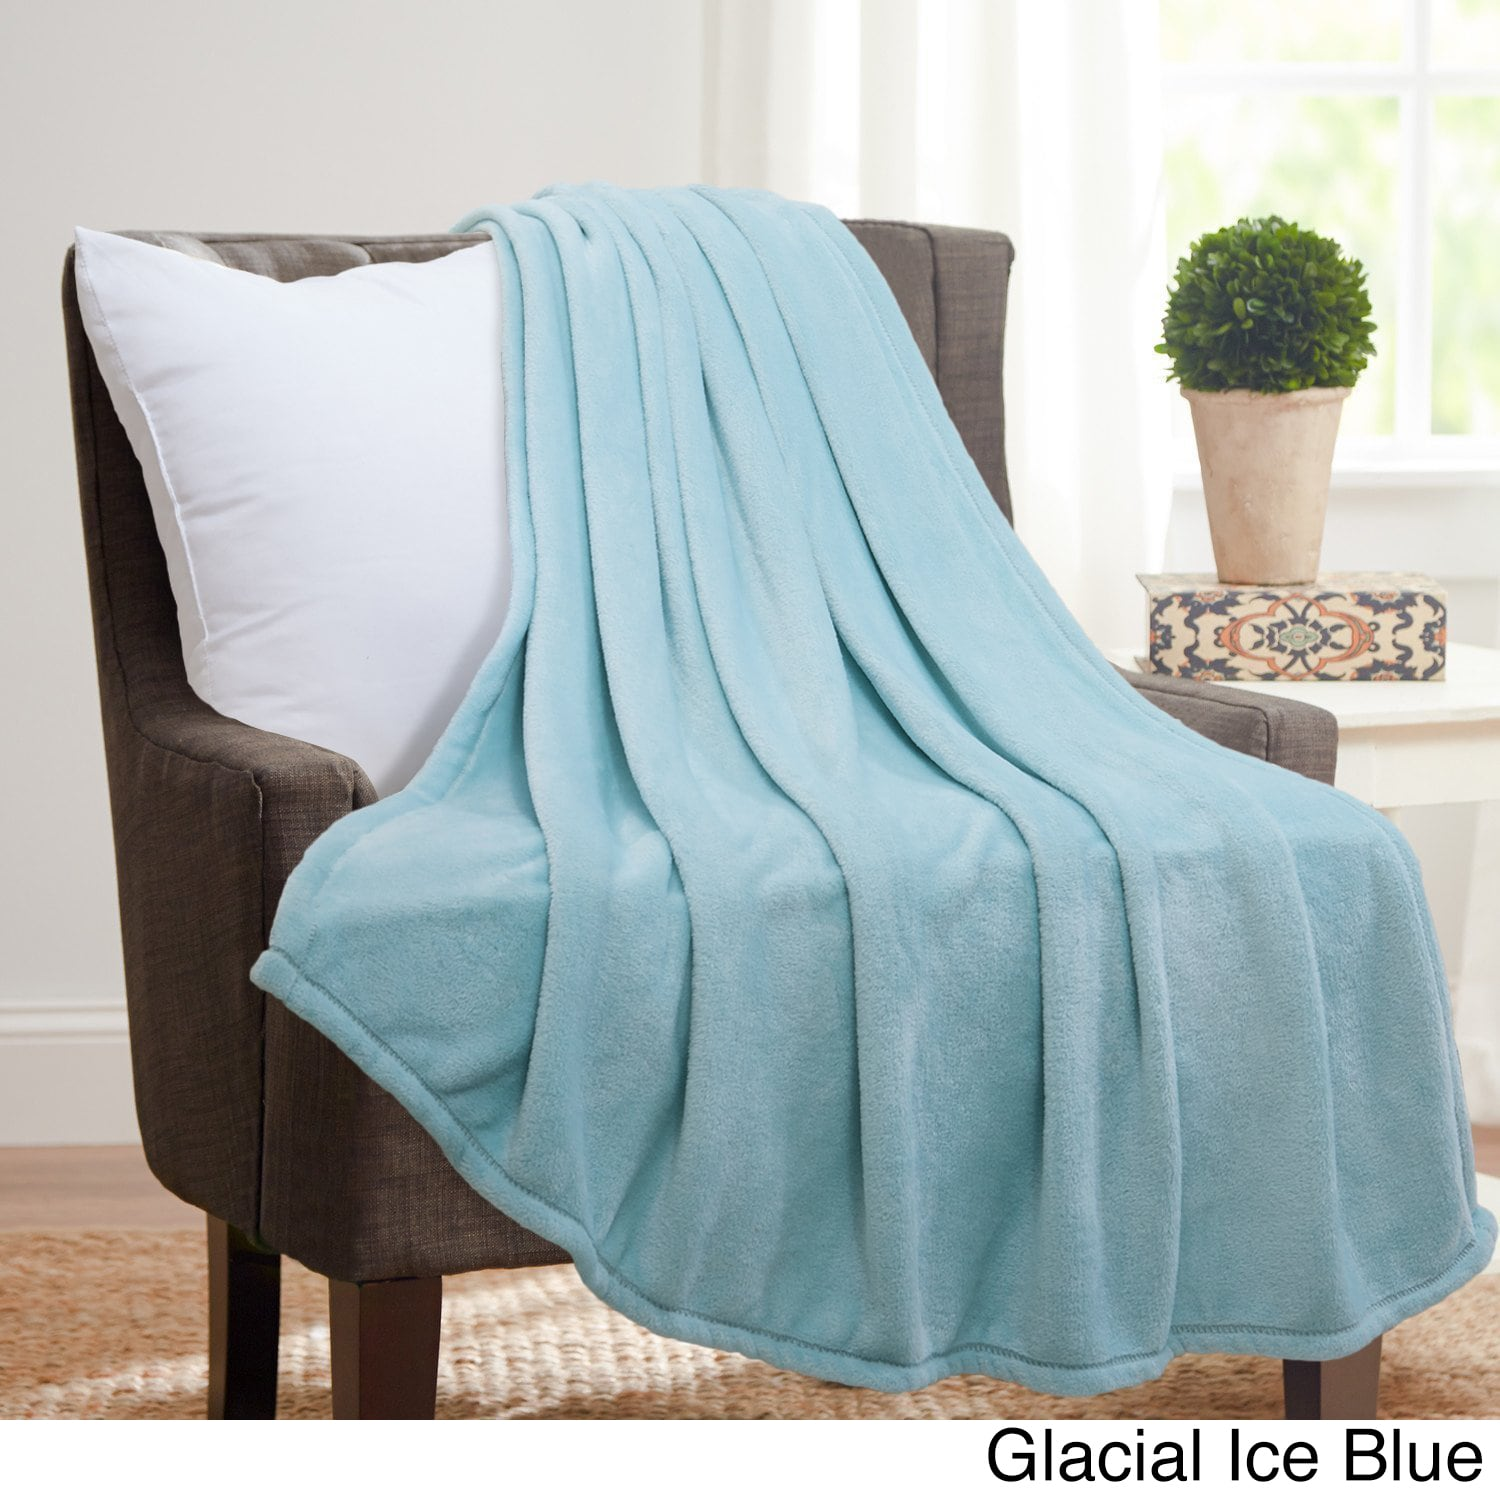 grand orders couch woven bath throw overstock hotel blanket free on bedding over product cotton shipping